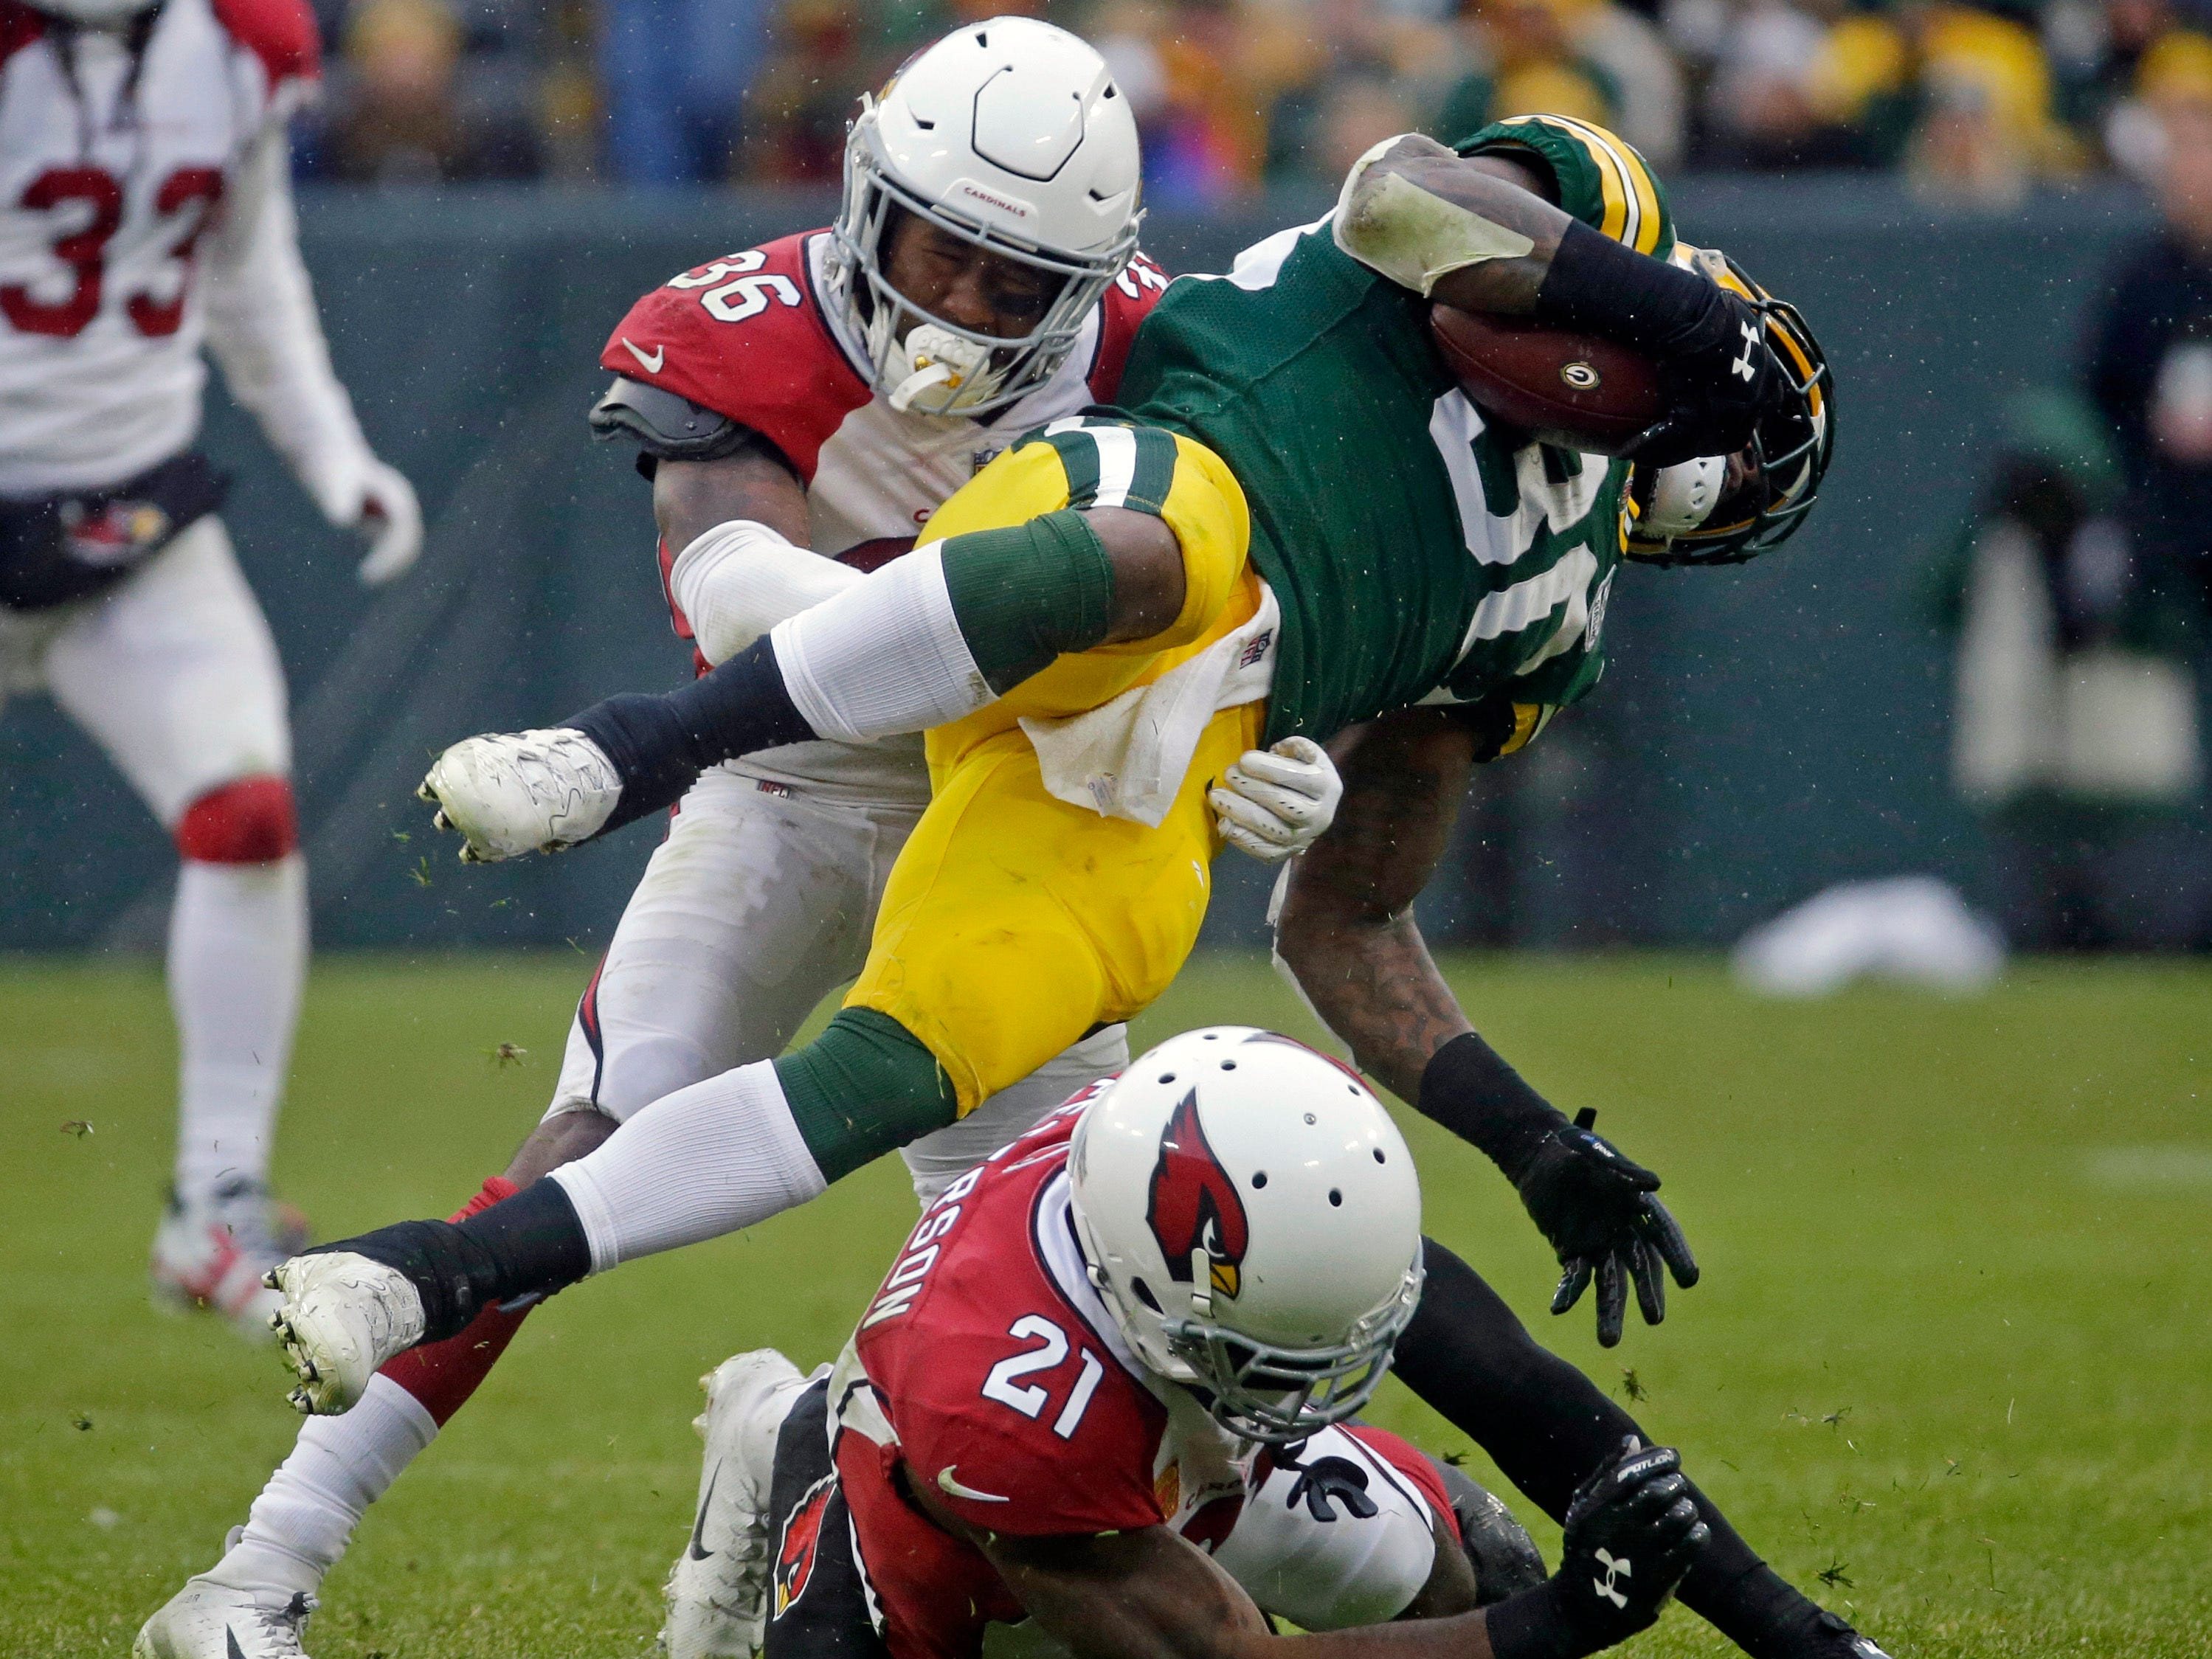 Green Bay Packers running back Jamaal Williams (30) is hit during a run by Arizona Cardinals strong safety Budda Baker (36) and Patrick Peterson (21) during the second half of an NFL football game Sunday, Dec. 2, 2018, in Green Bay, Wis. (AP Photo/Mike Roemer)